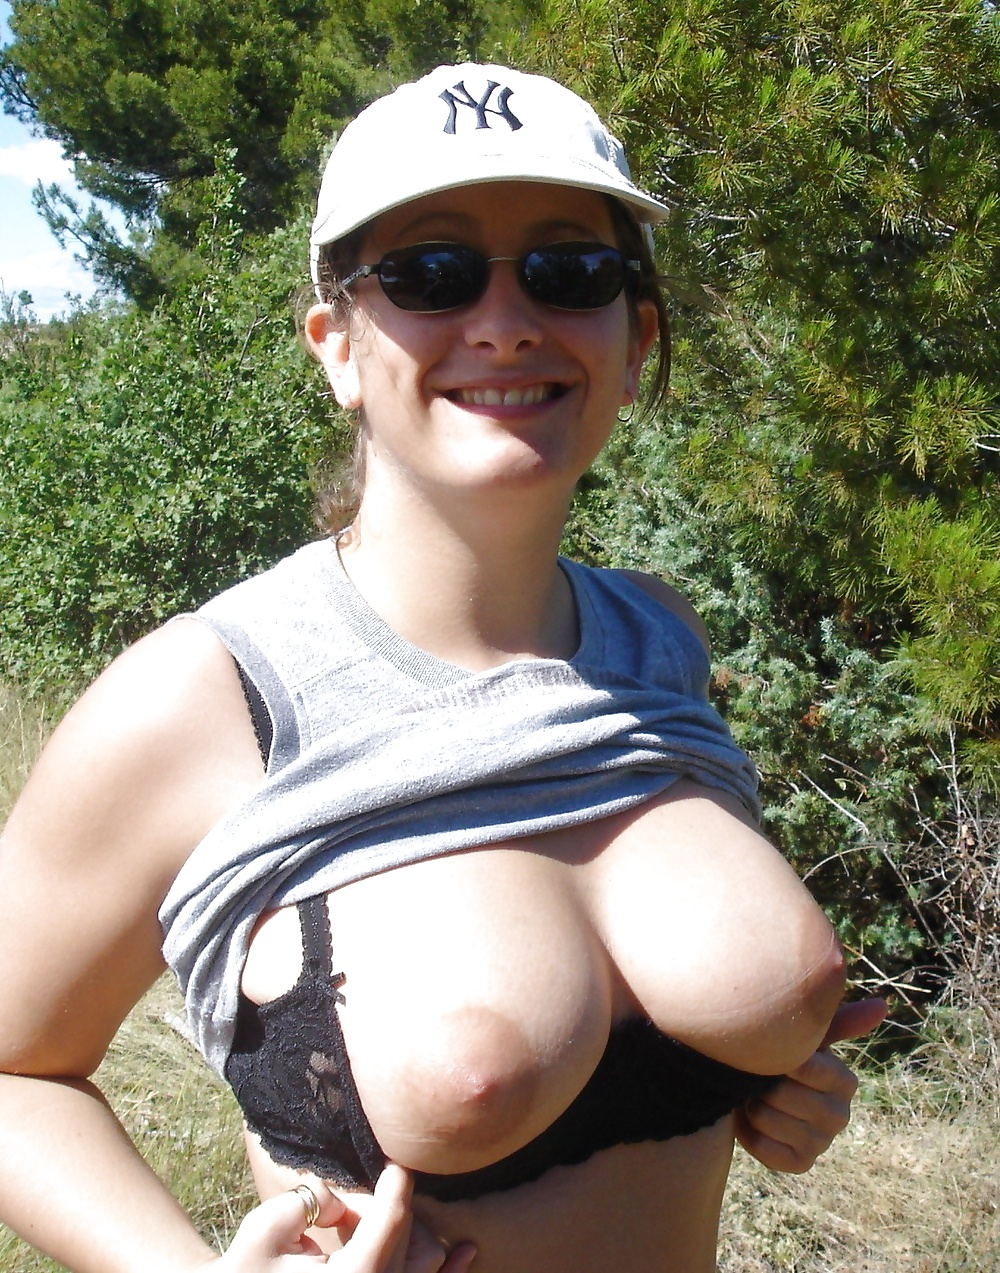 Flashing tits outside